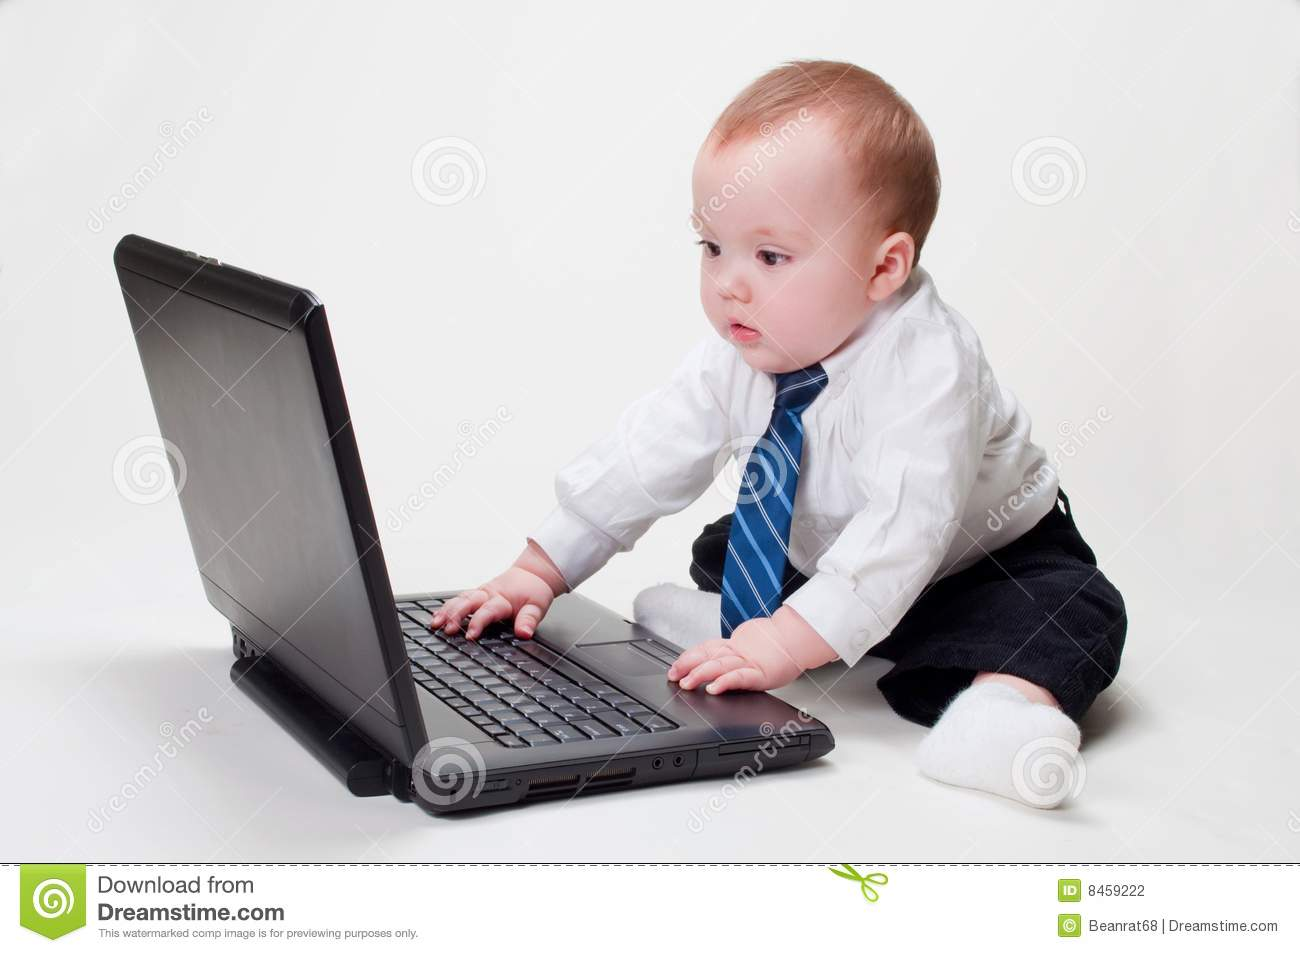 Cute baby businessman working on his laptop with a blank screen.